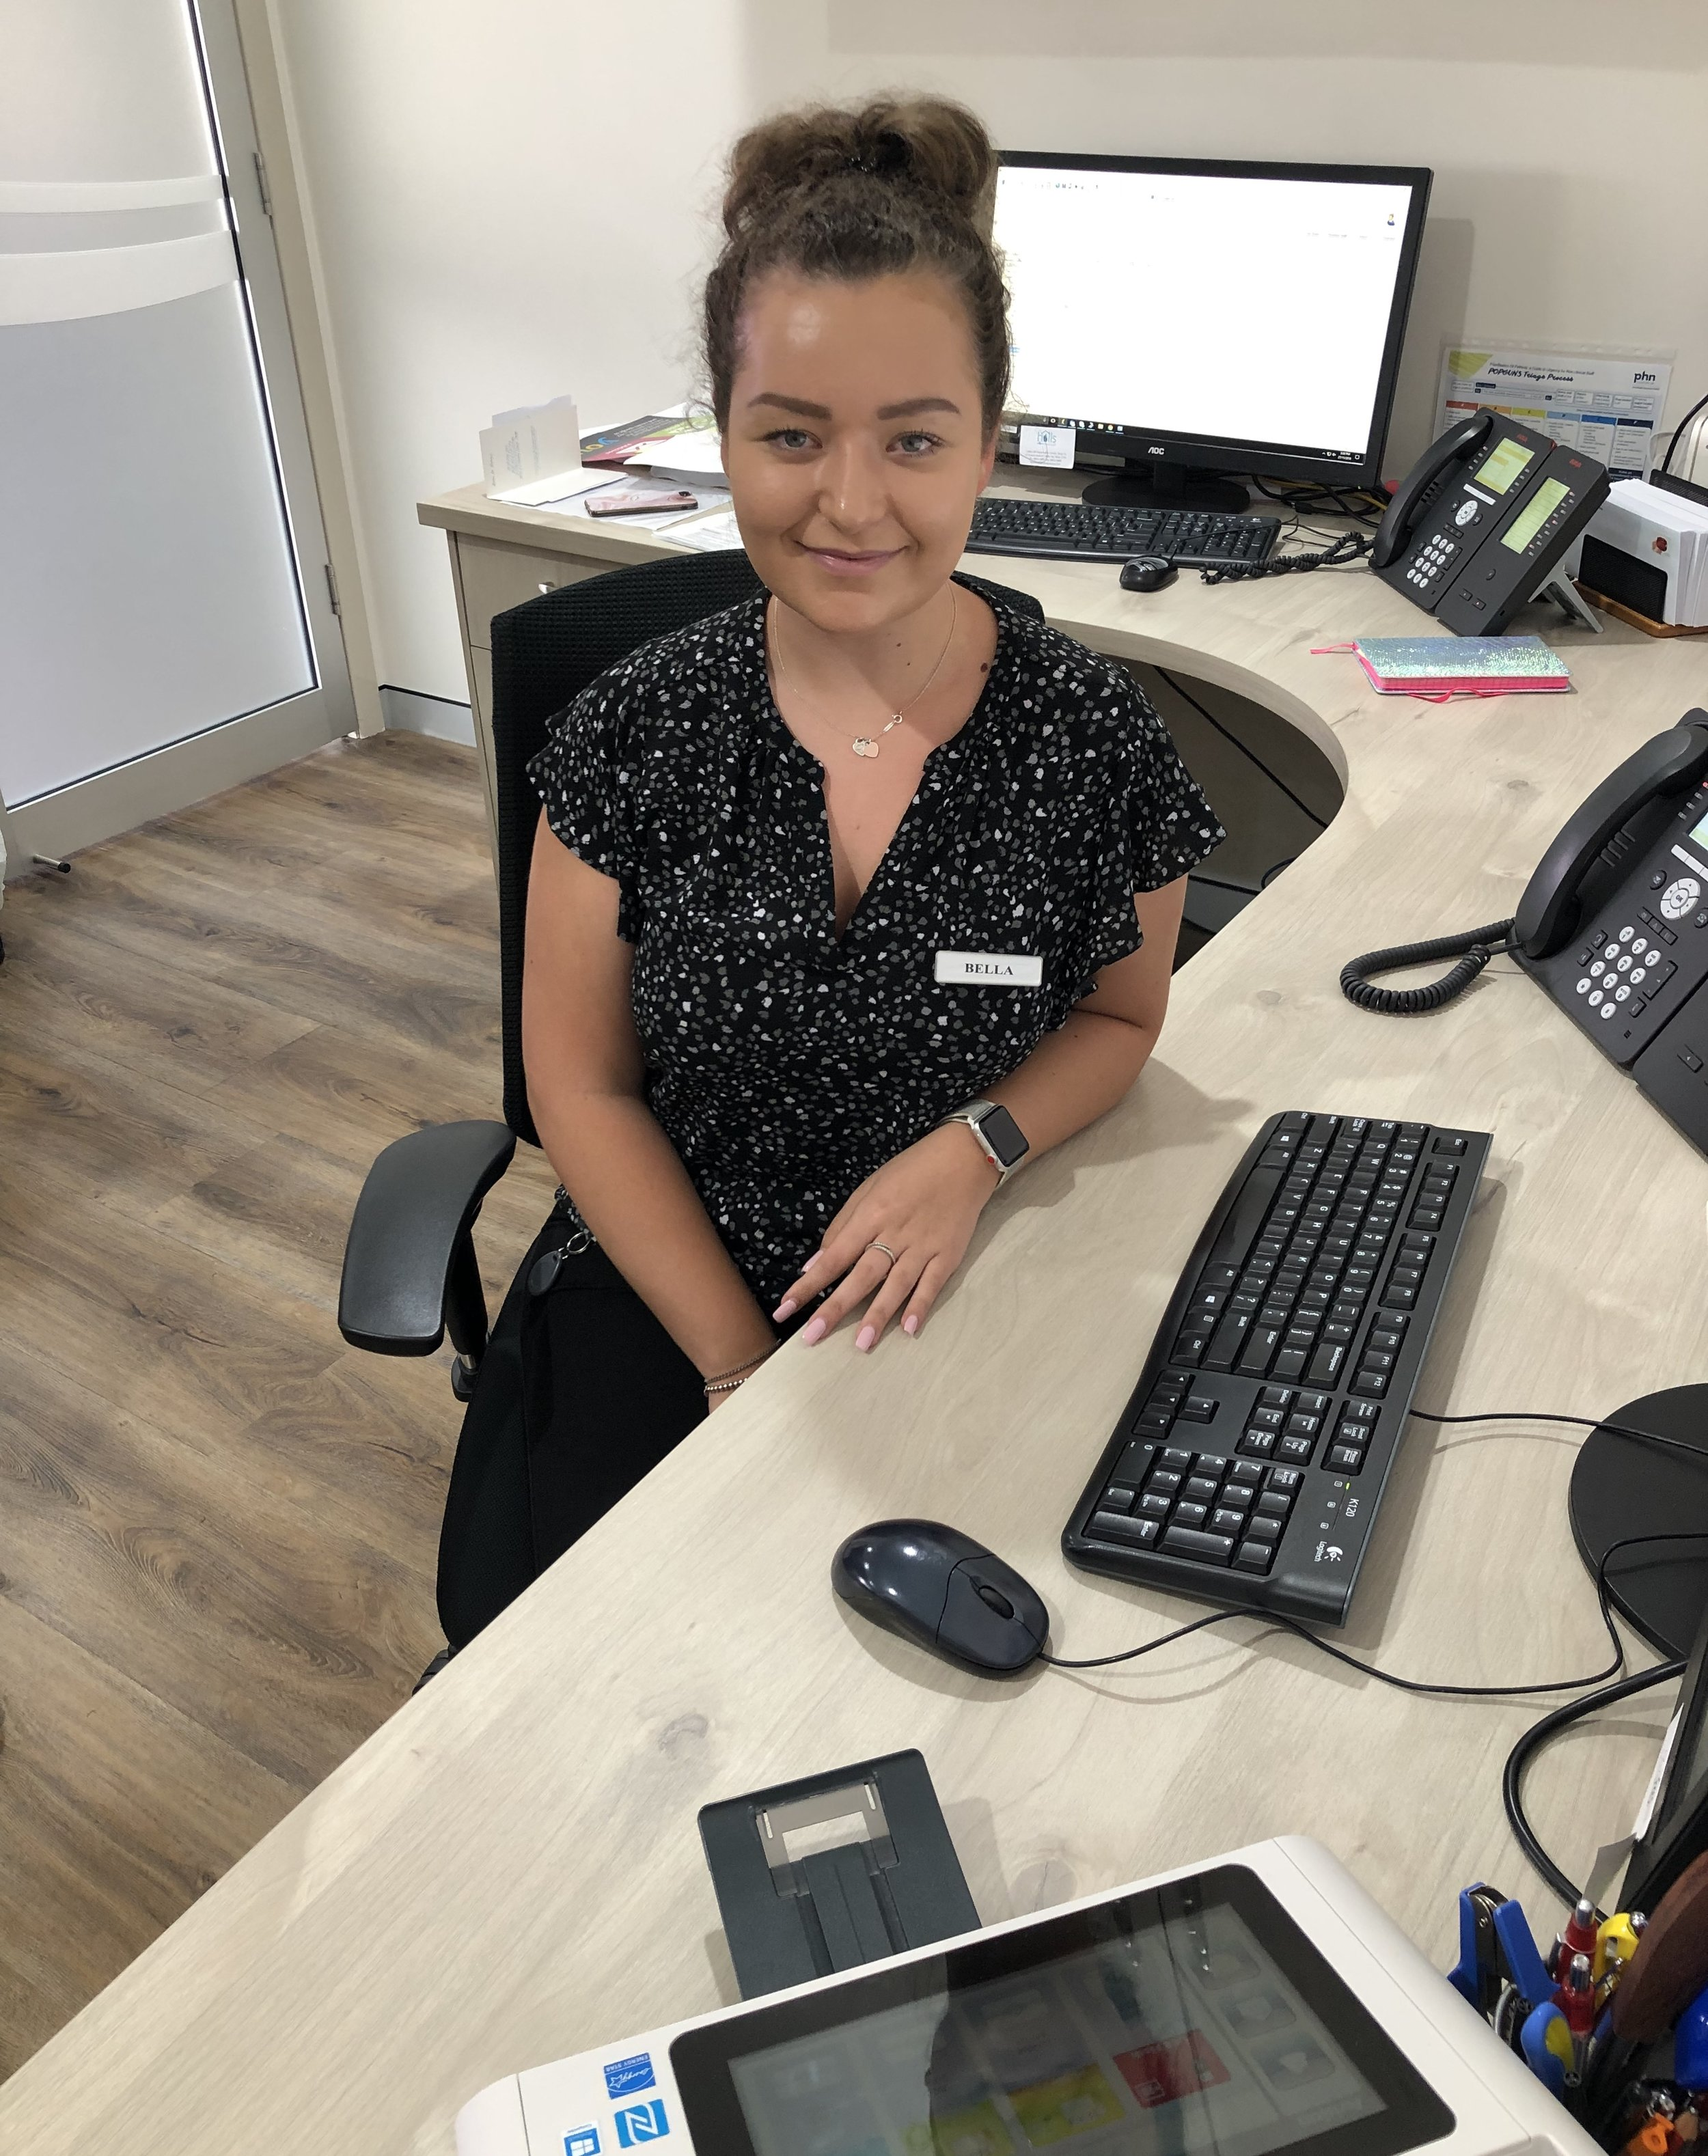 Bella - Bella started here in January 2017. She has been working in customer service for 4 years which has enabled her to grow and work well as a team player. She is friendly, approachable and is always willing to assist our patients to the best of her ability.Bella has also started her new role as a Medical Practice Assistant. This will allow her to work with the clinical side of the practice, assisting patients with a number of tasks such as dressings, INR's and other procedures.She is looking forward to being able to further attend to the needs of all patients in a more in depth way, as she will gain a better understanding of how things run behind the scenes and how to look after the patients here at the practice beyond the front desk.